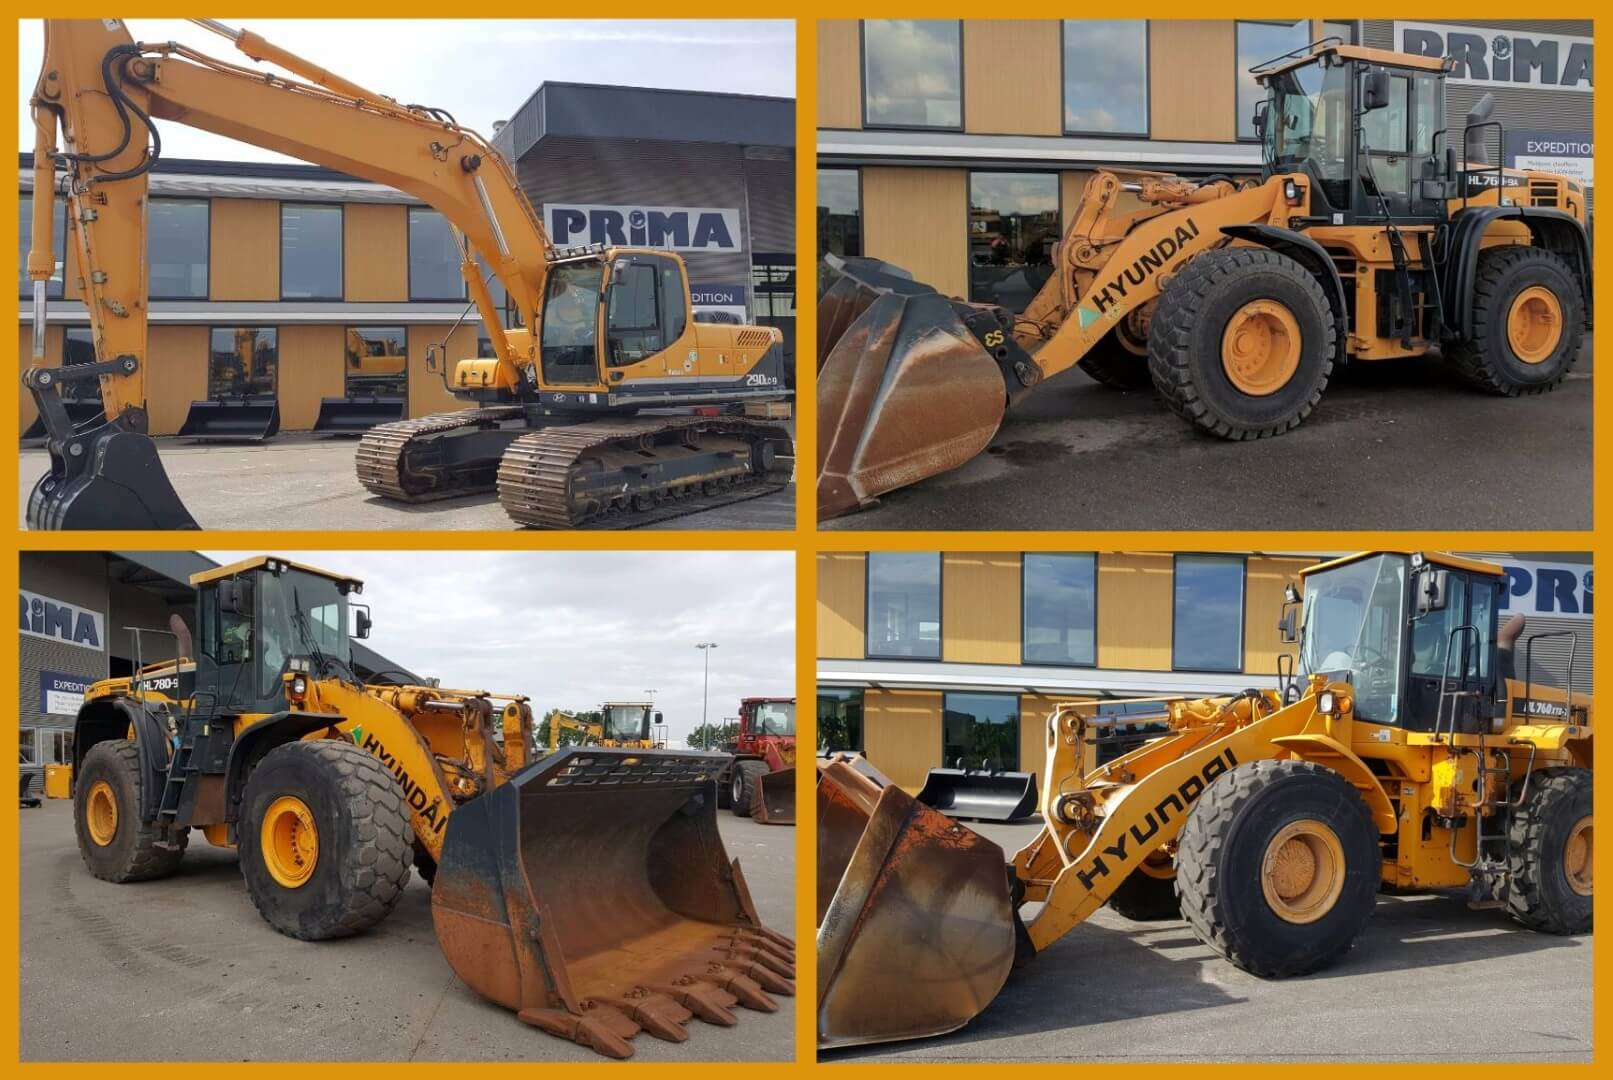 hyundai used equipment